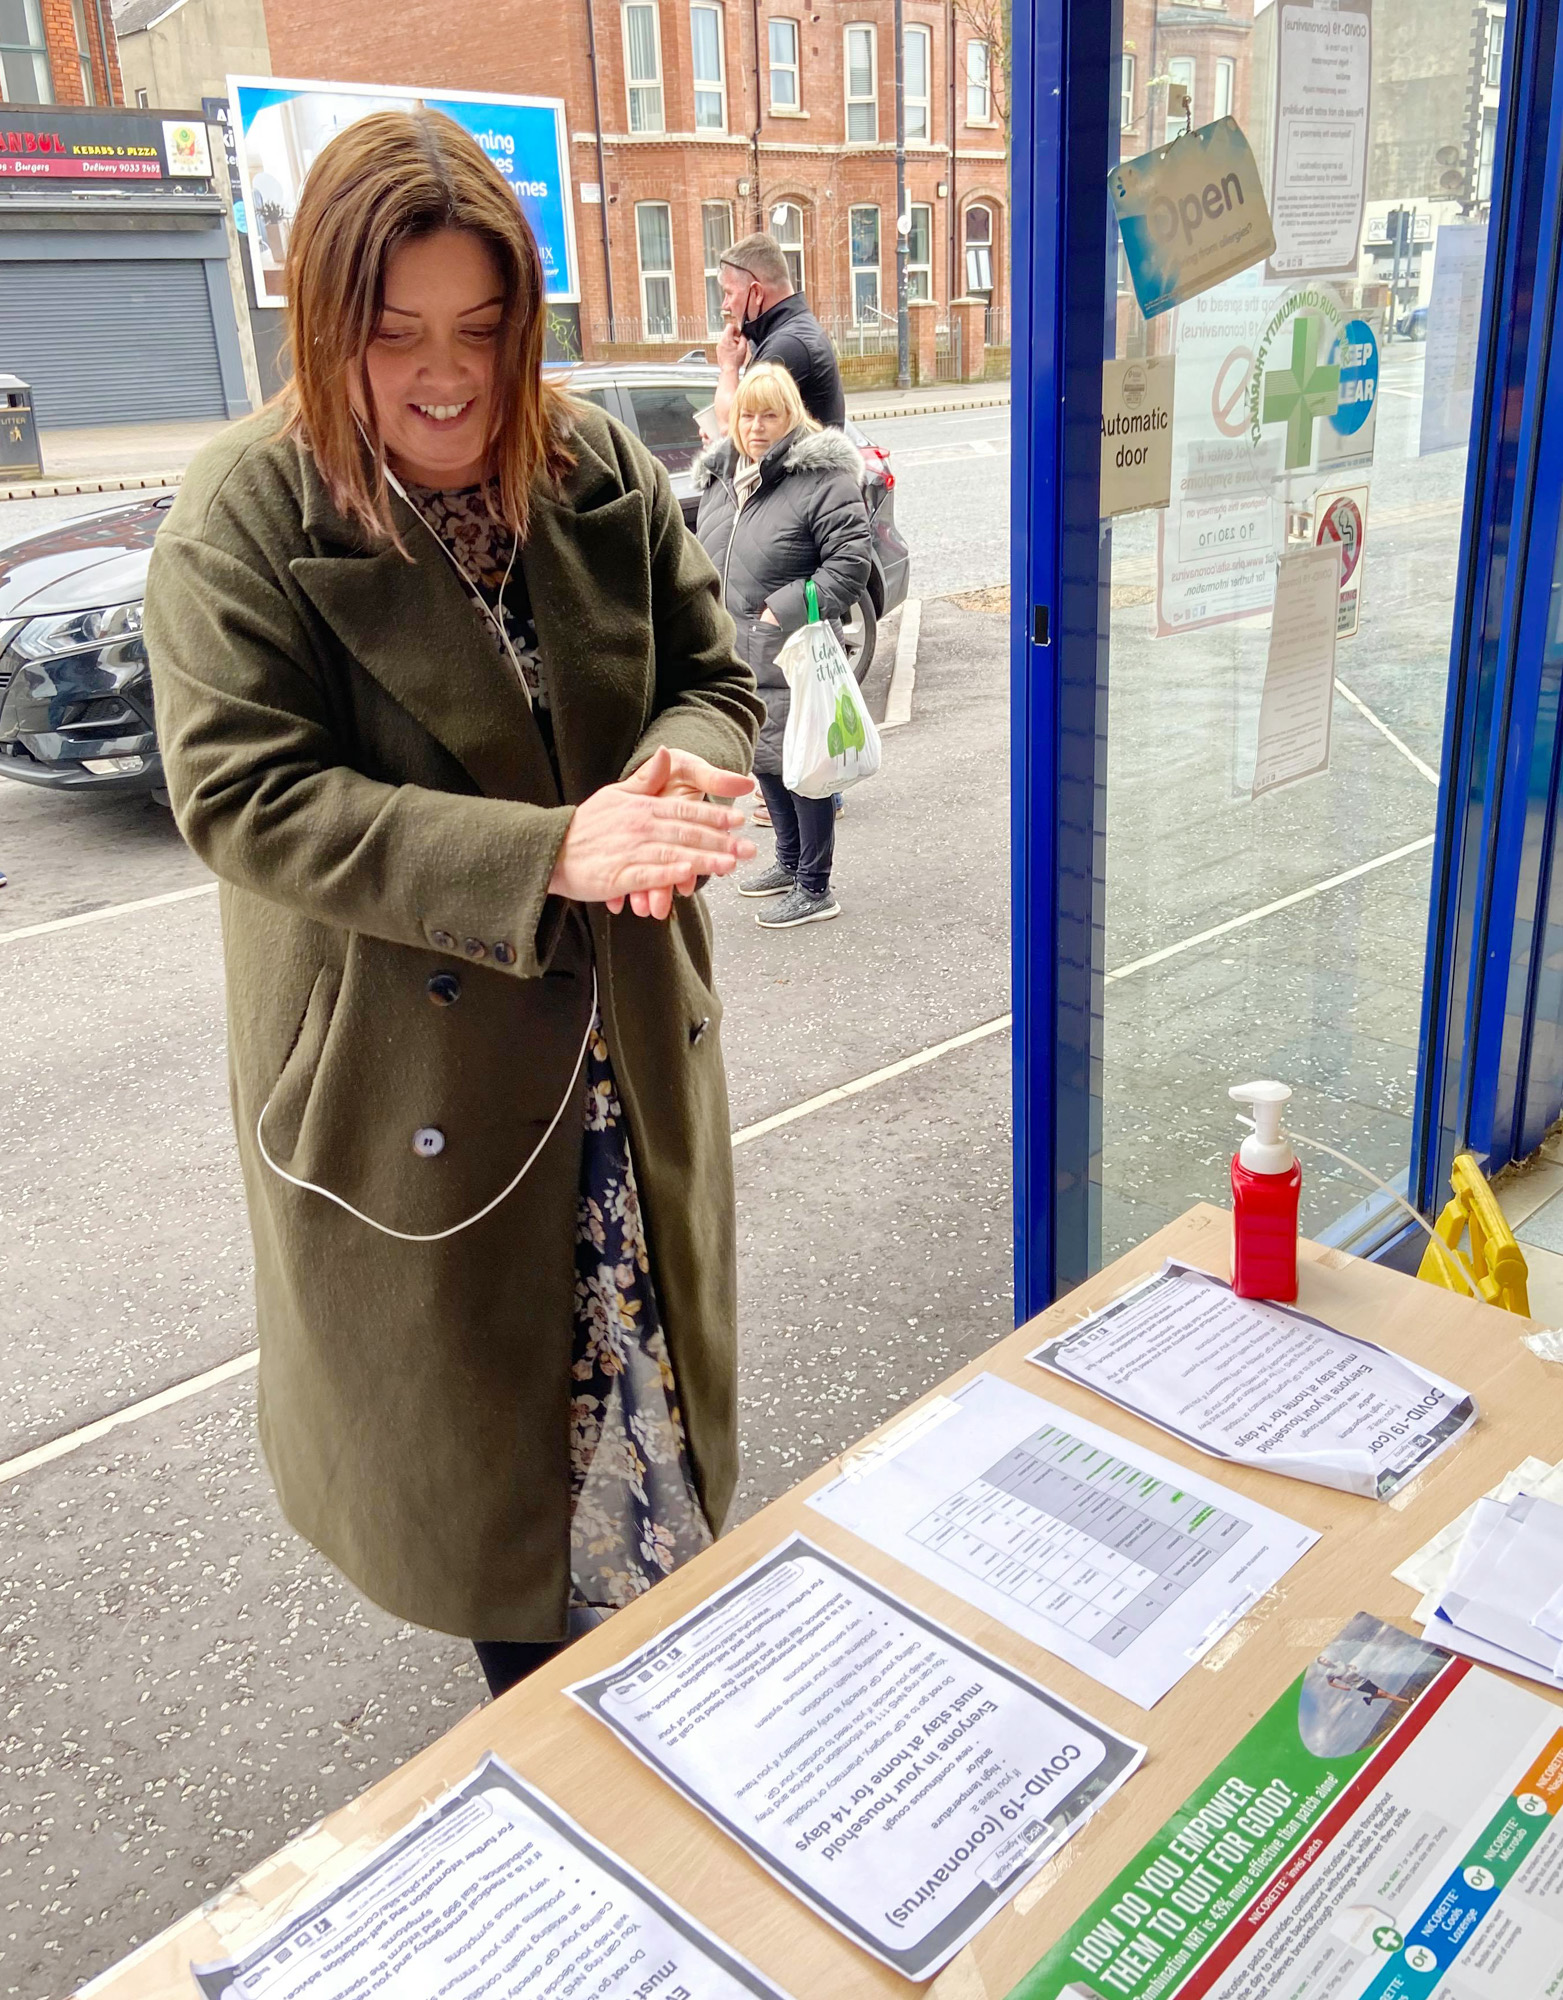 Communities Minister Deirdre Hargey uses sanitiser provided to customers at Medicare Pharmacy on Lisburn Road before entering the chemists.